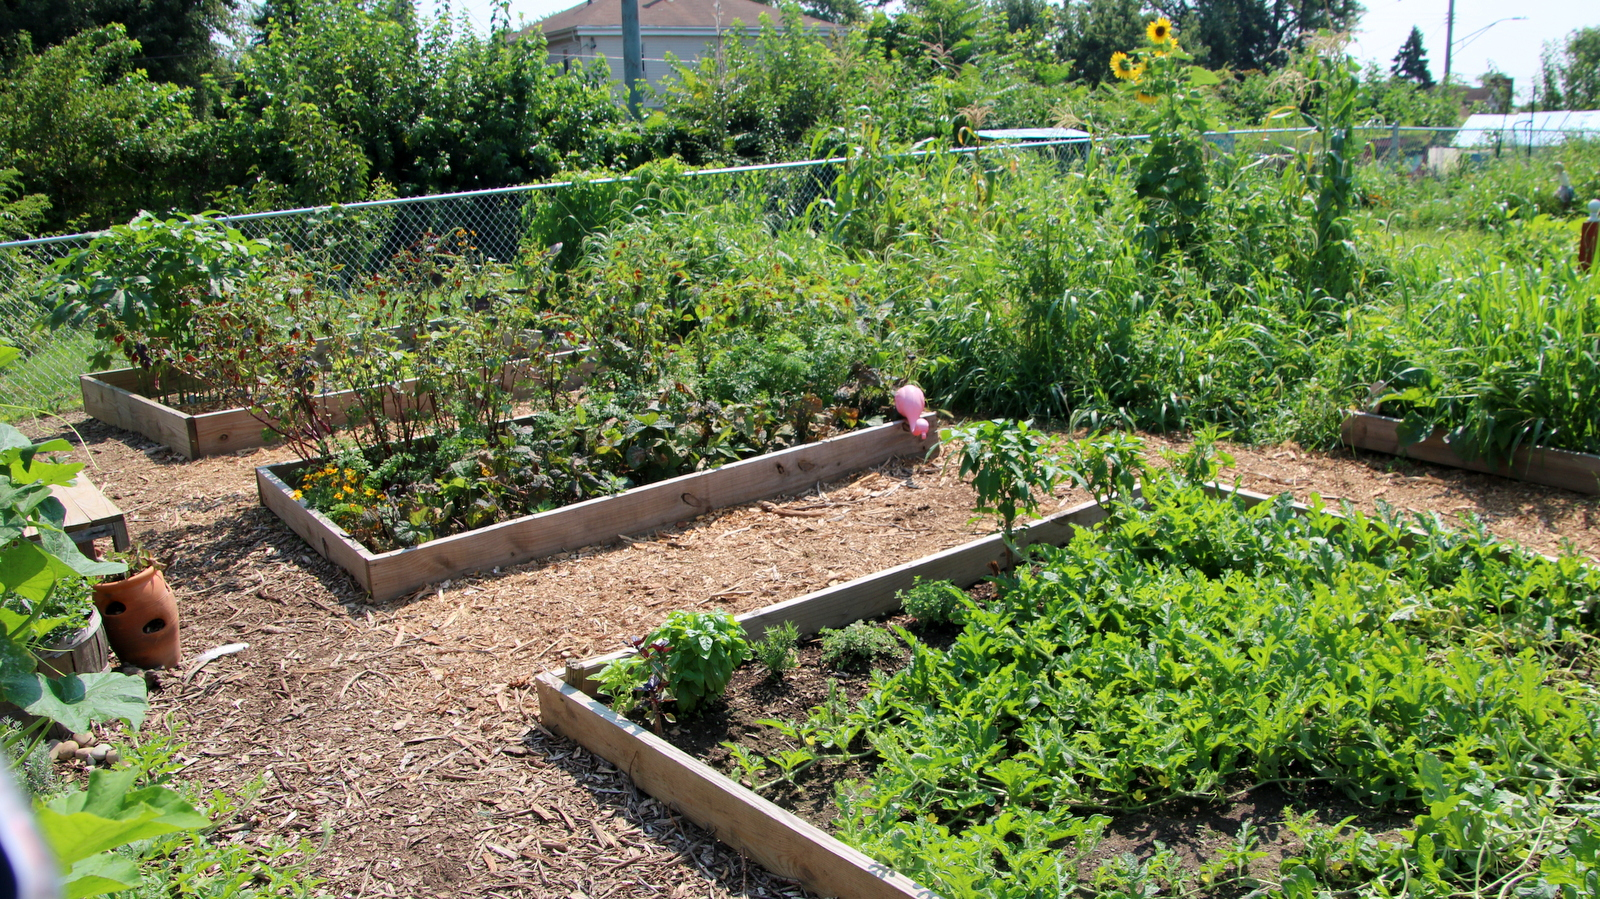 Raised beds tended by Curtis Bay residents. (Fern Shen)